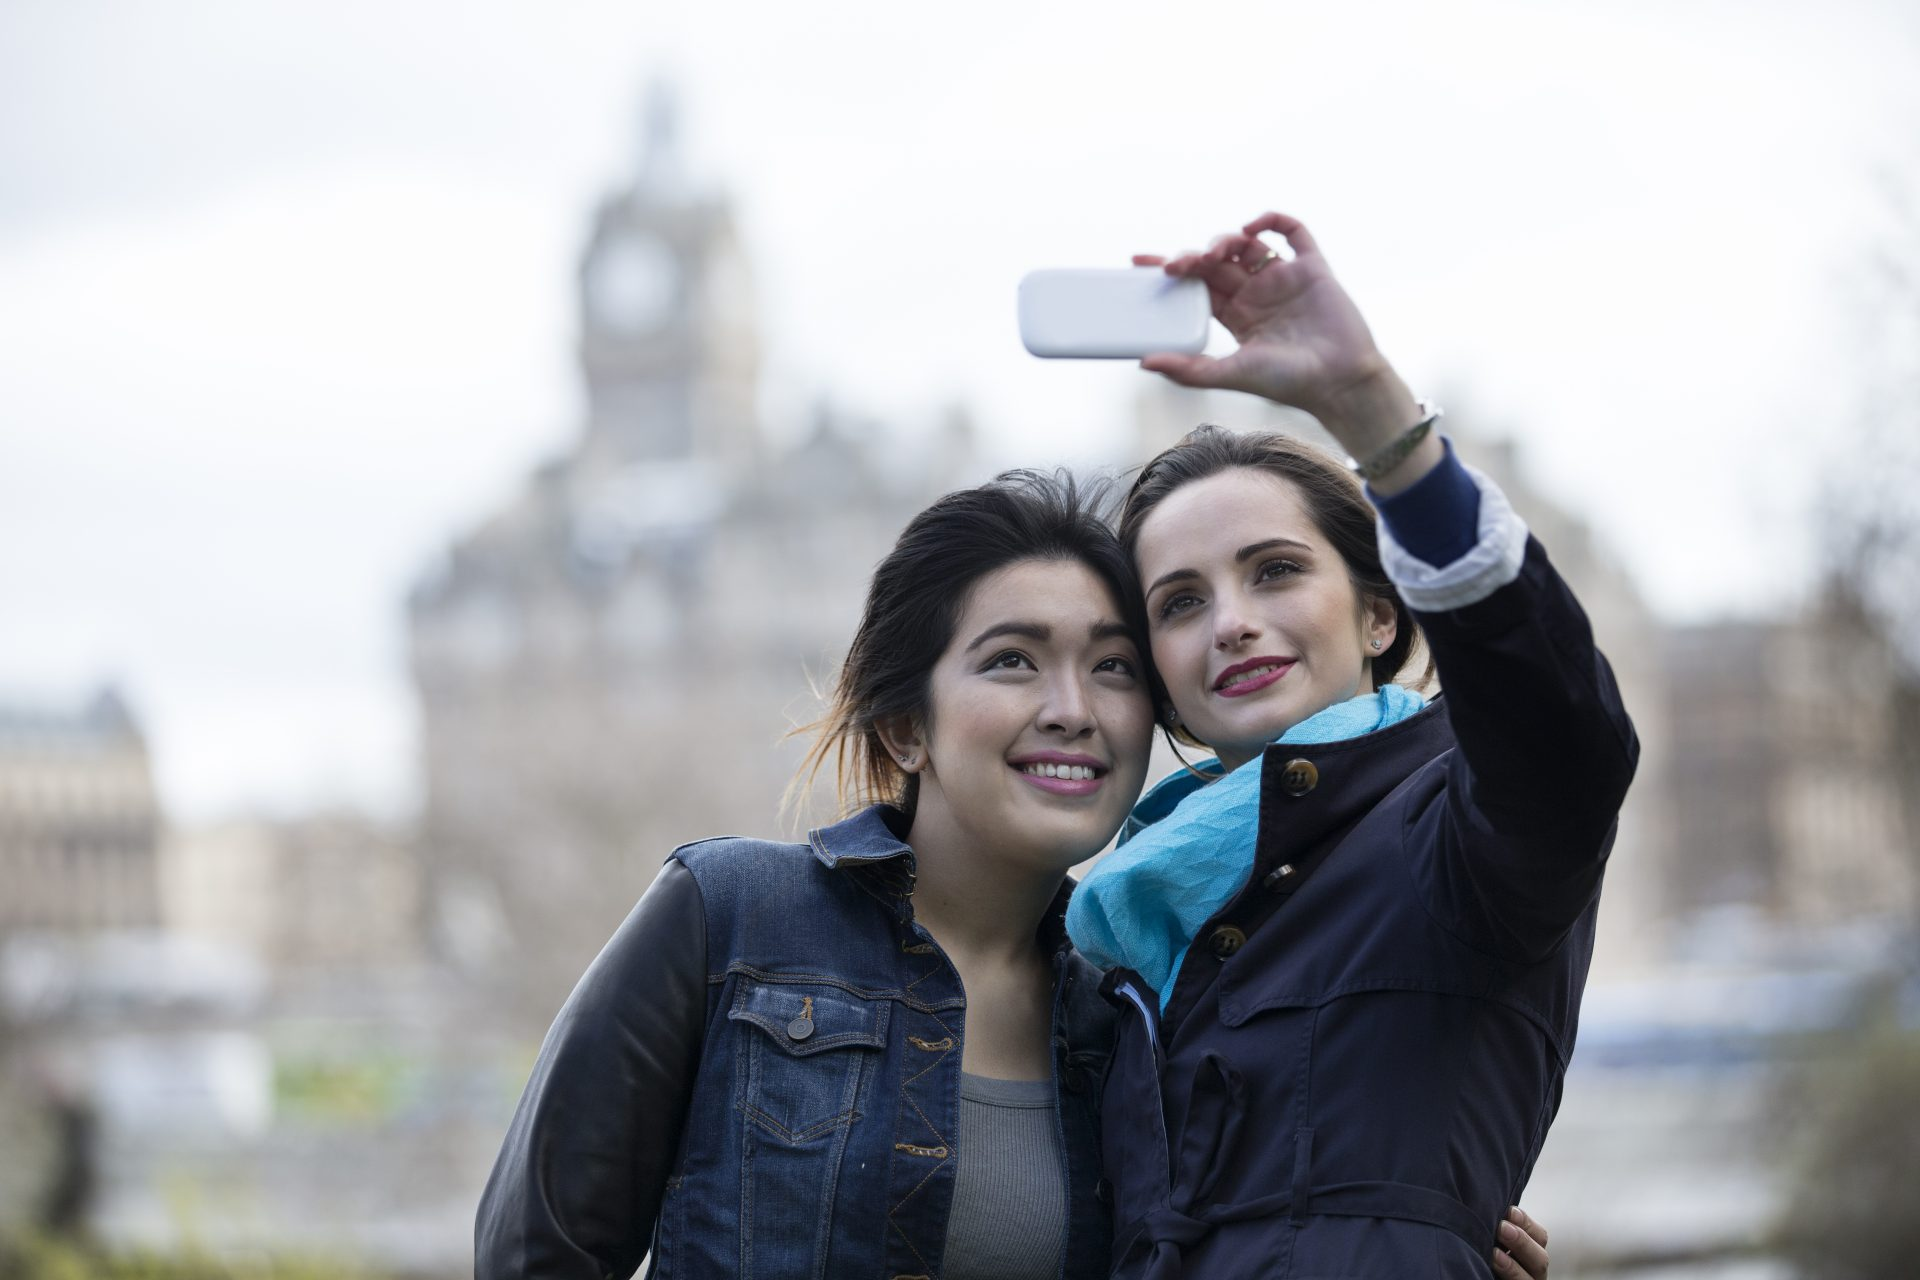 Two young women take a selfie in Edinburgh